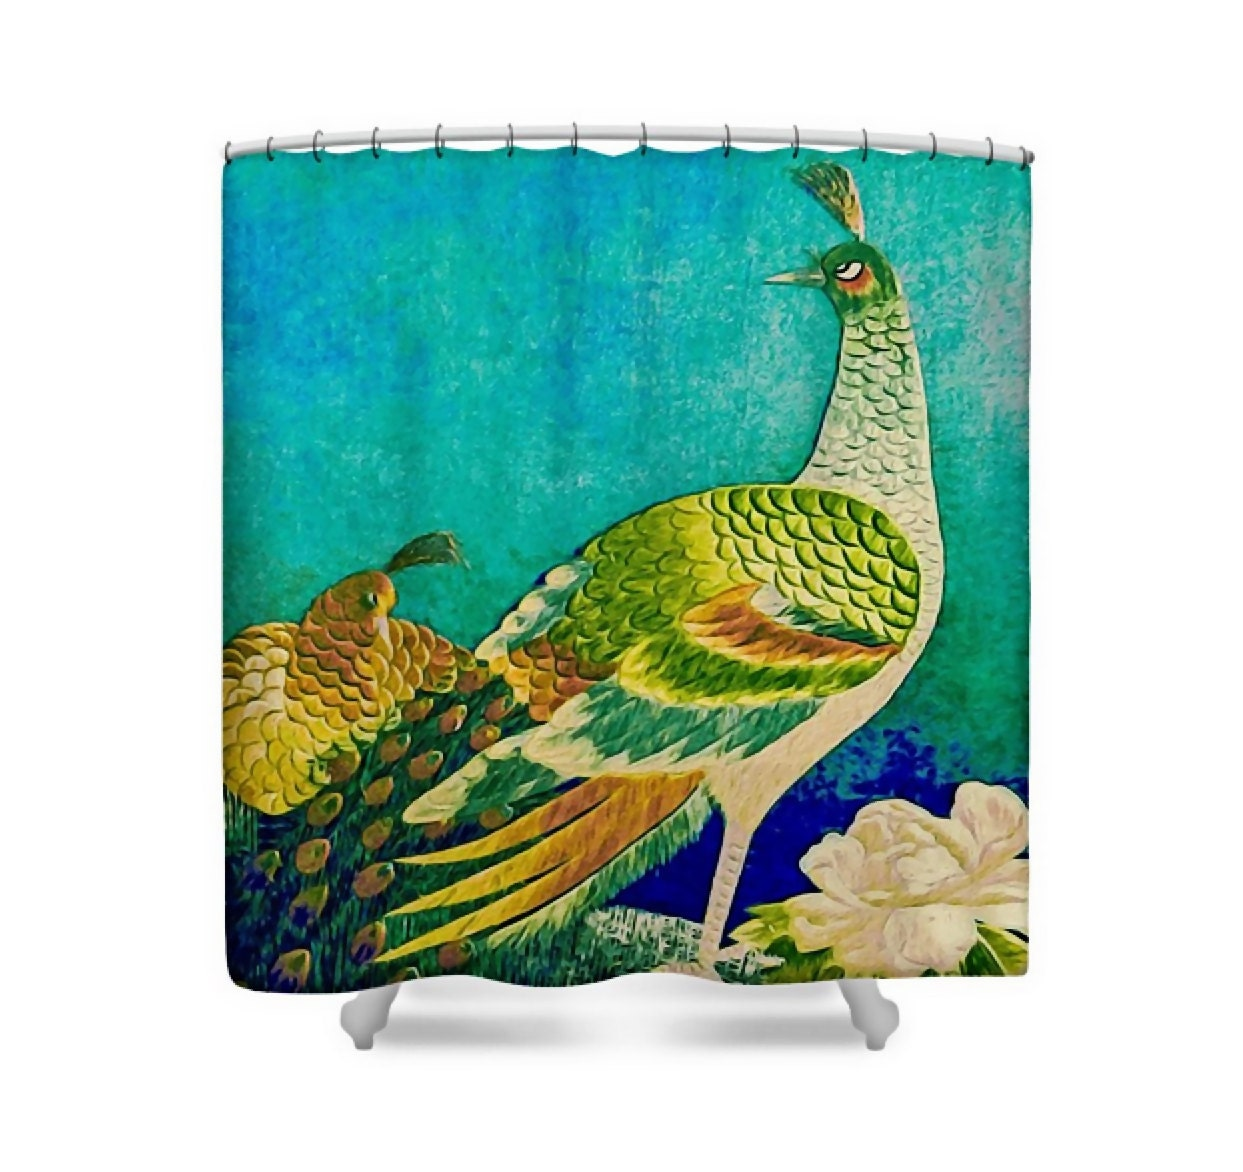 Peacock Art Fabric Shower Curtain Turquoise Blue Green Vintage Kimono Embroidery Bath Decor Handsome Peacock By Susan Maxwell Schmidt